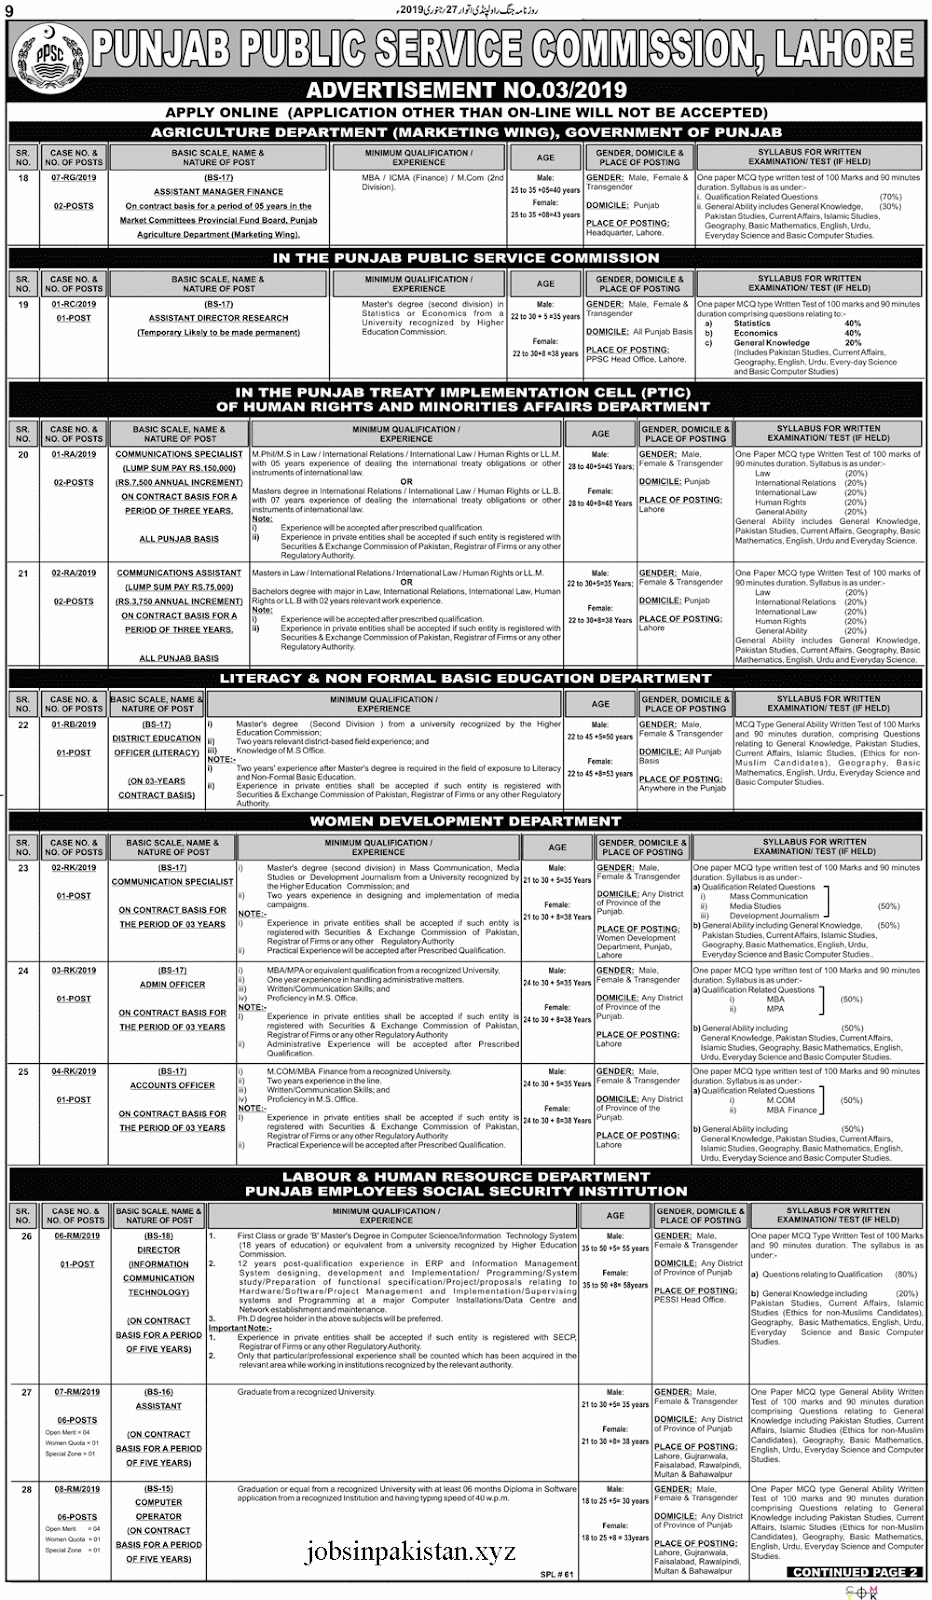 PPSC Advertisement 03/2019 Page No. 1/2